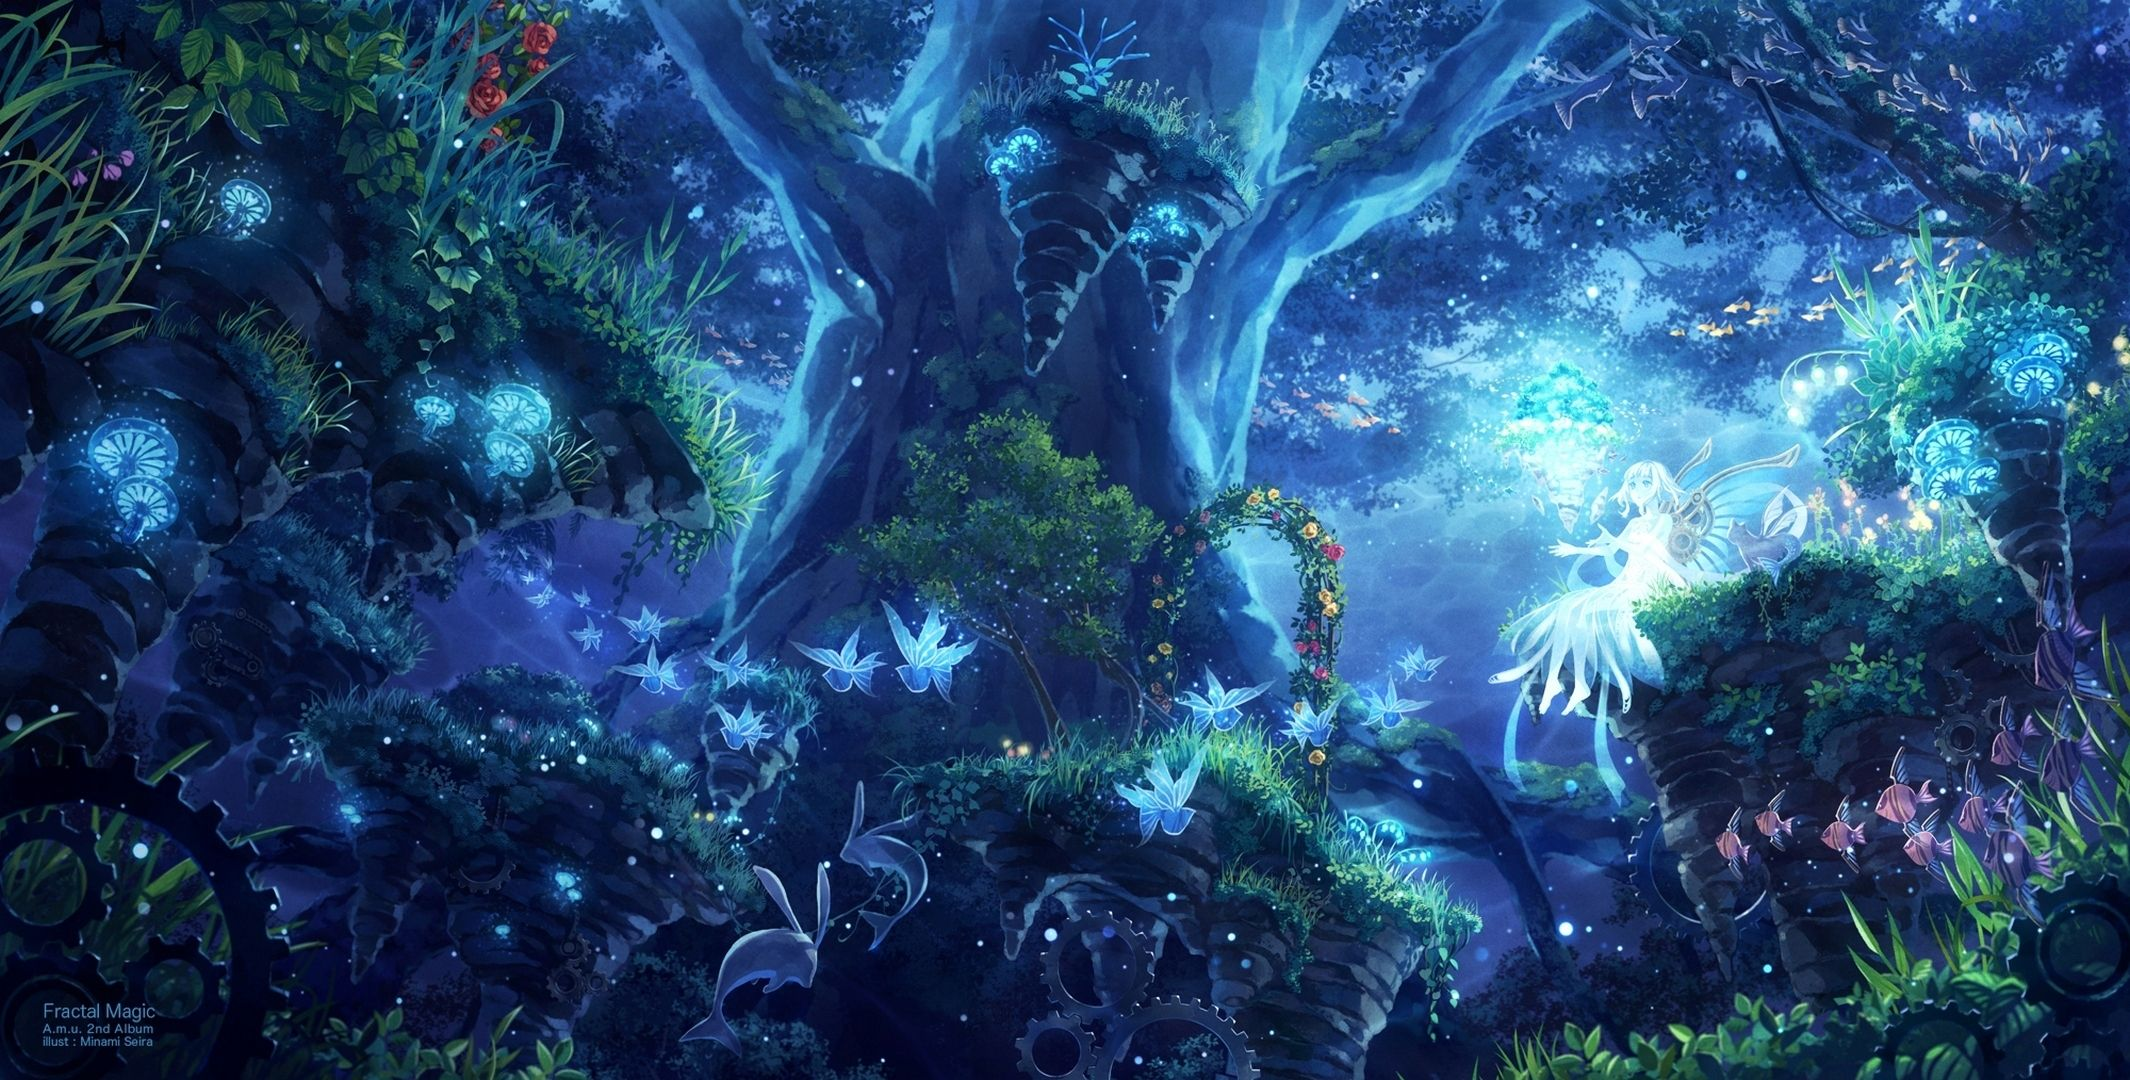 Pin By Như Y On Art Pinterest Anime Scenery Fantasy Art And